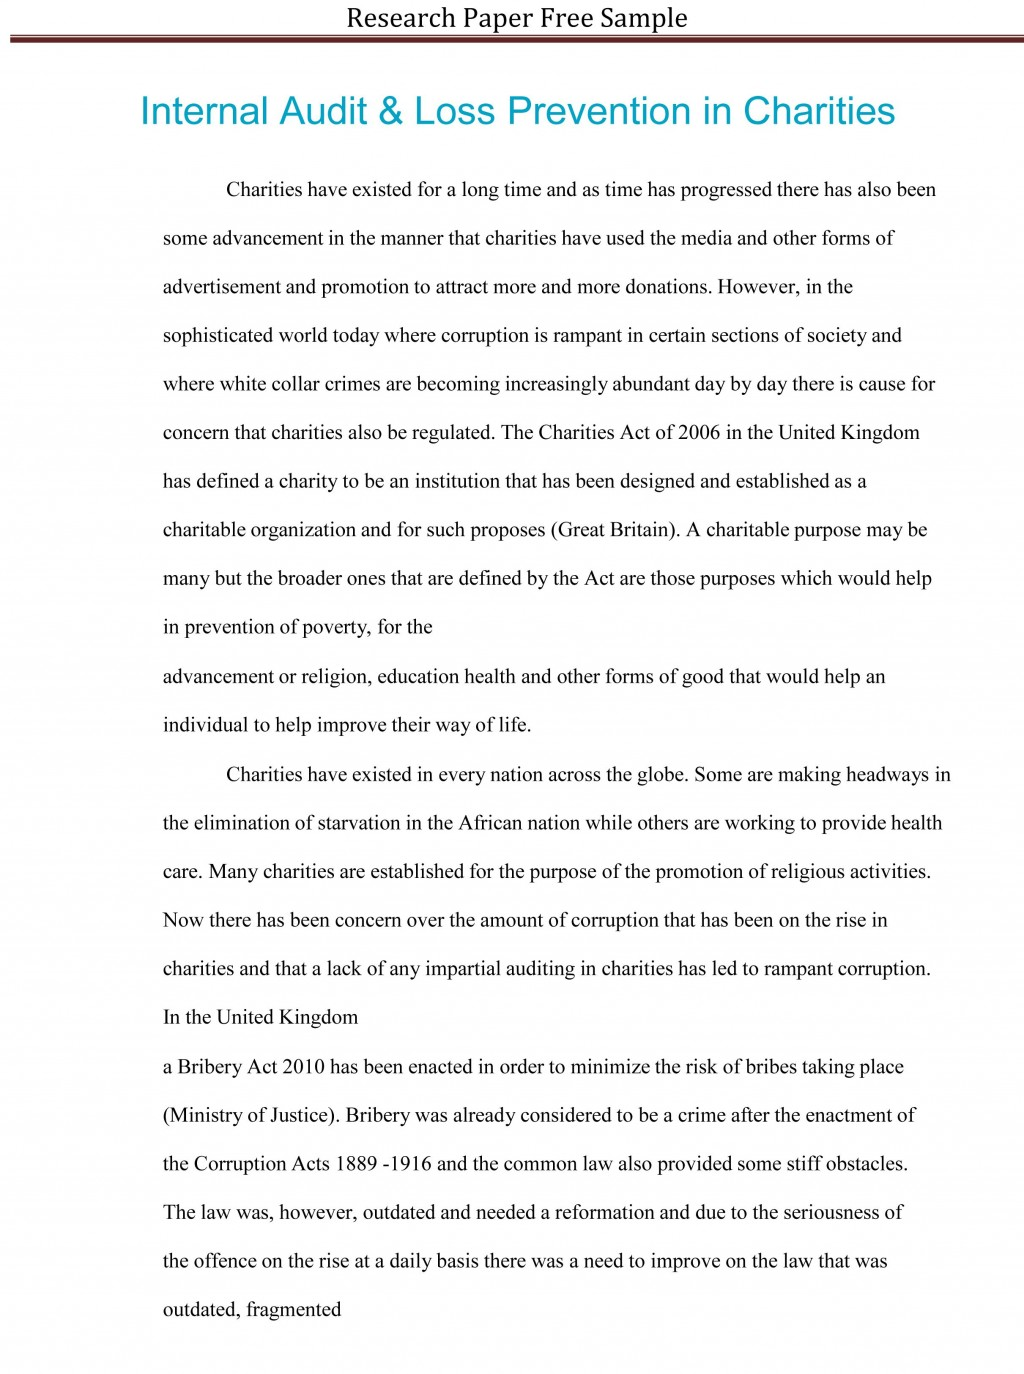 007 How To Write College Research Paper For Outstanding A Dummies Large